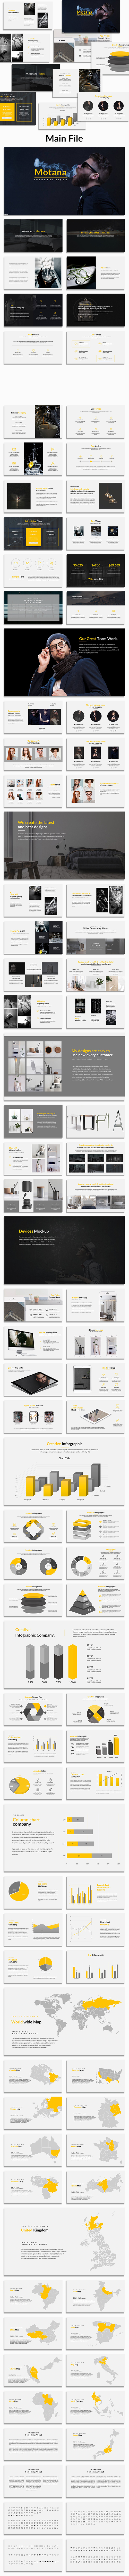 Motana Multipurpose Google Slide Template - Google Slides Presentation Templates